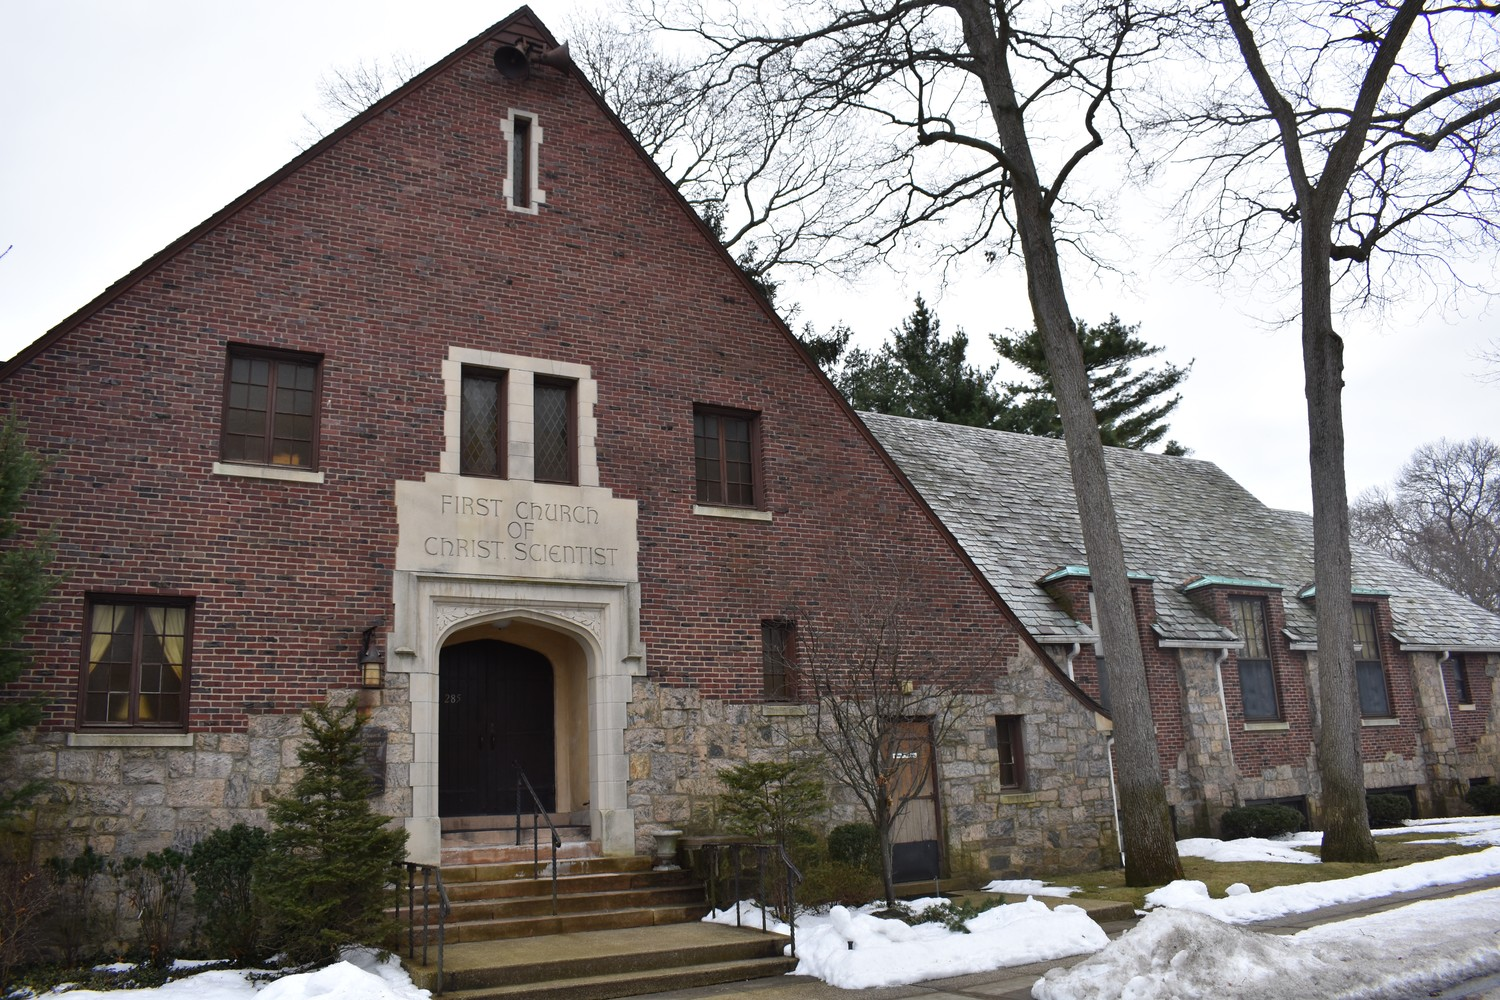 The First Church of Christ, Scientist, at 285 Morris Ave. in Rockville Centre, has welcomed followers since 1931.